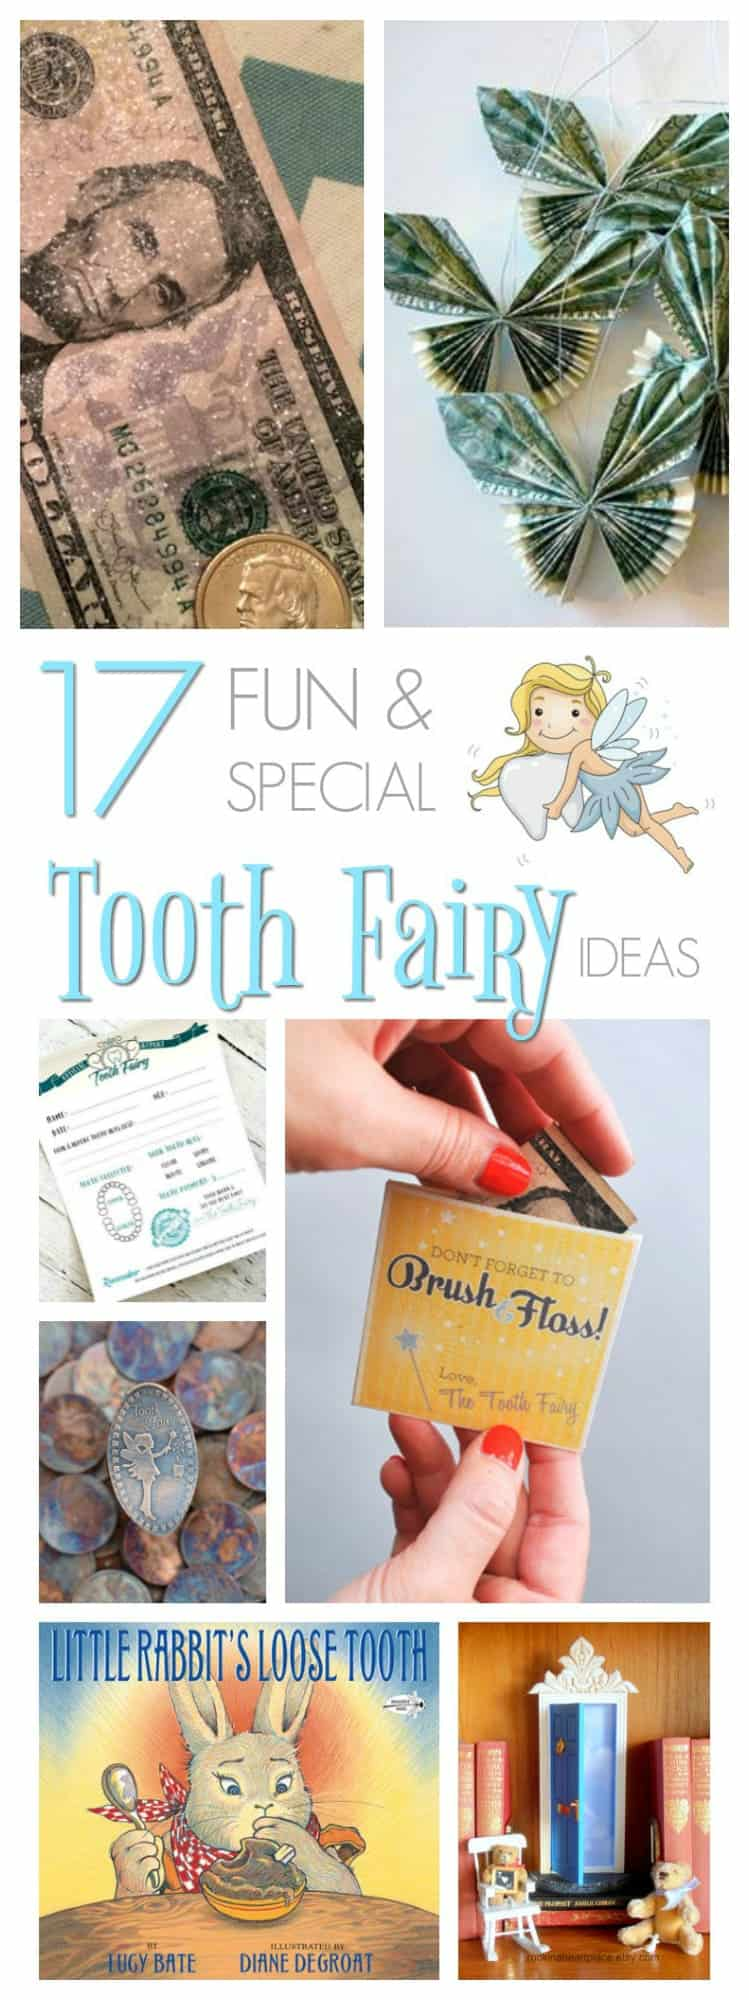 17 Fun & Special Tooth Fairy Ideas